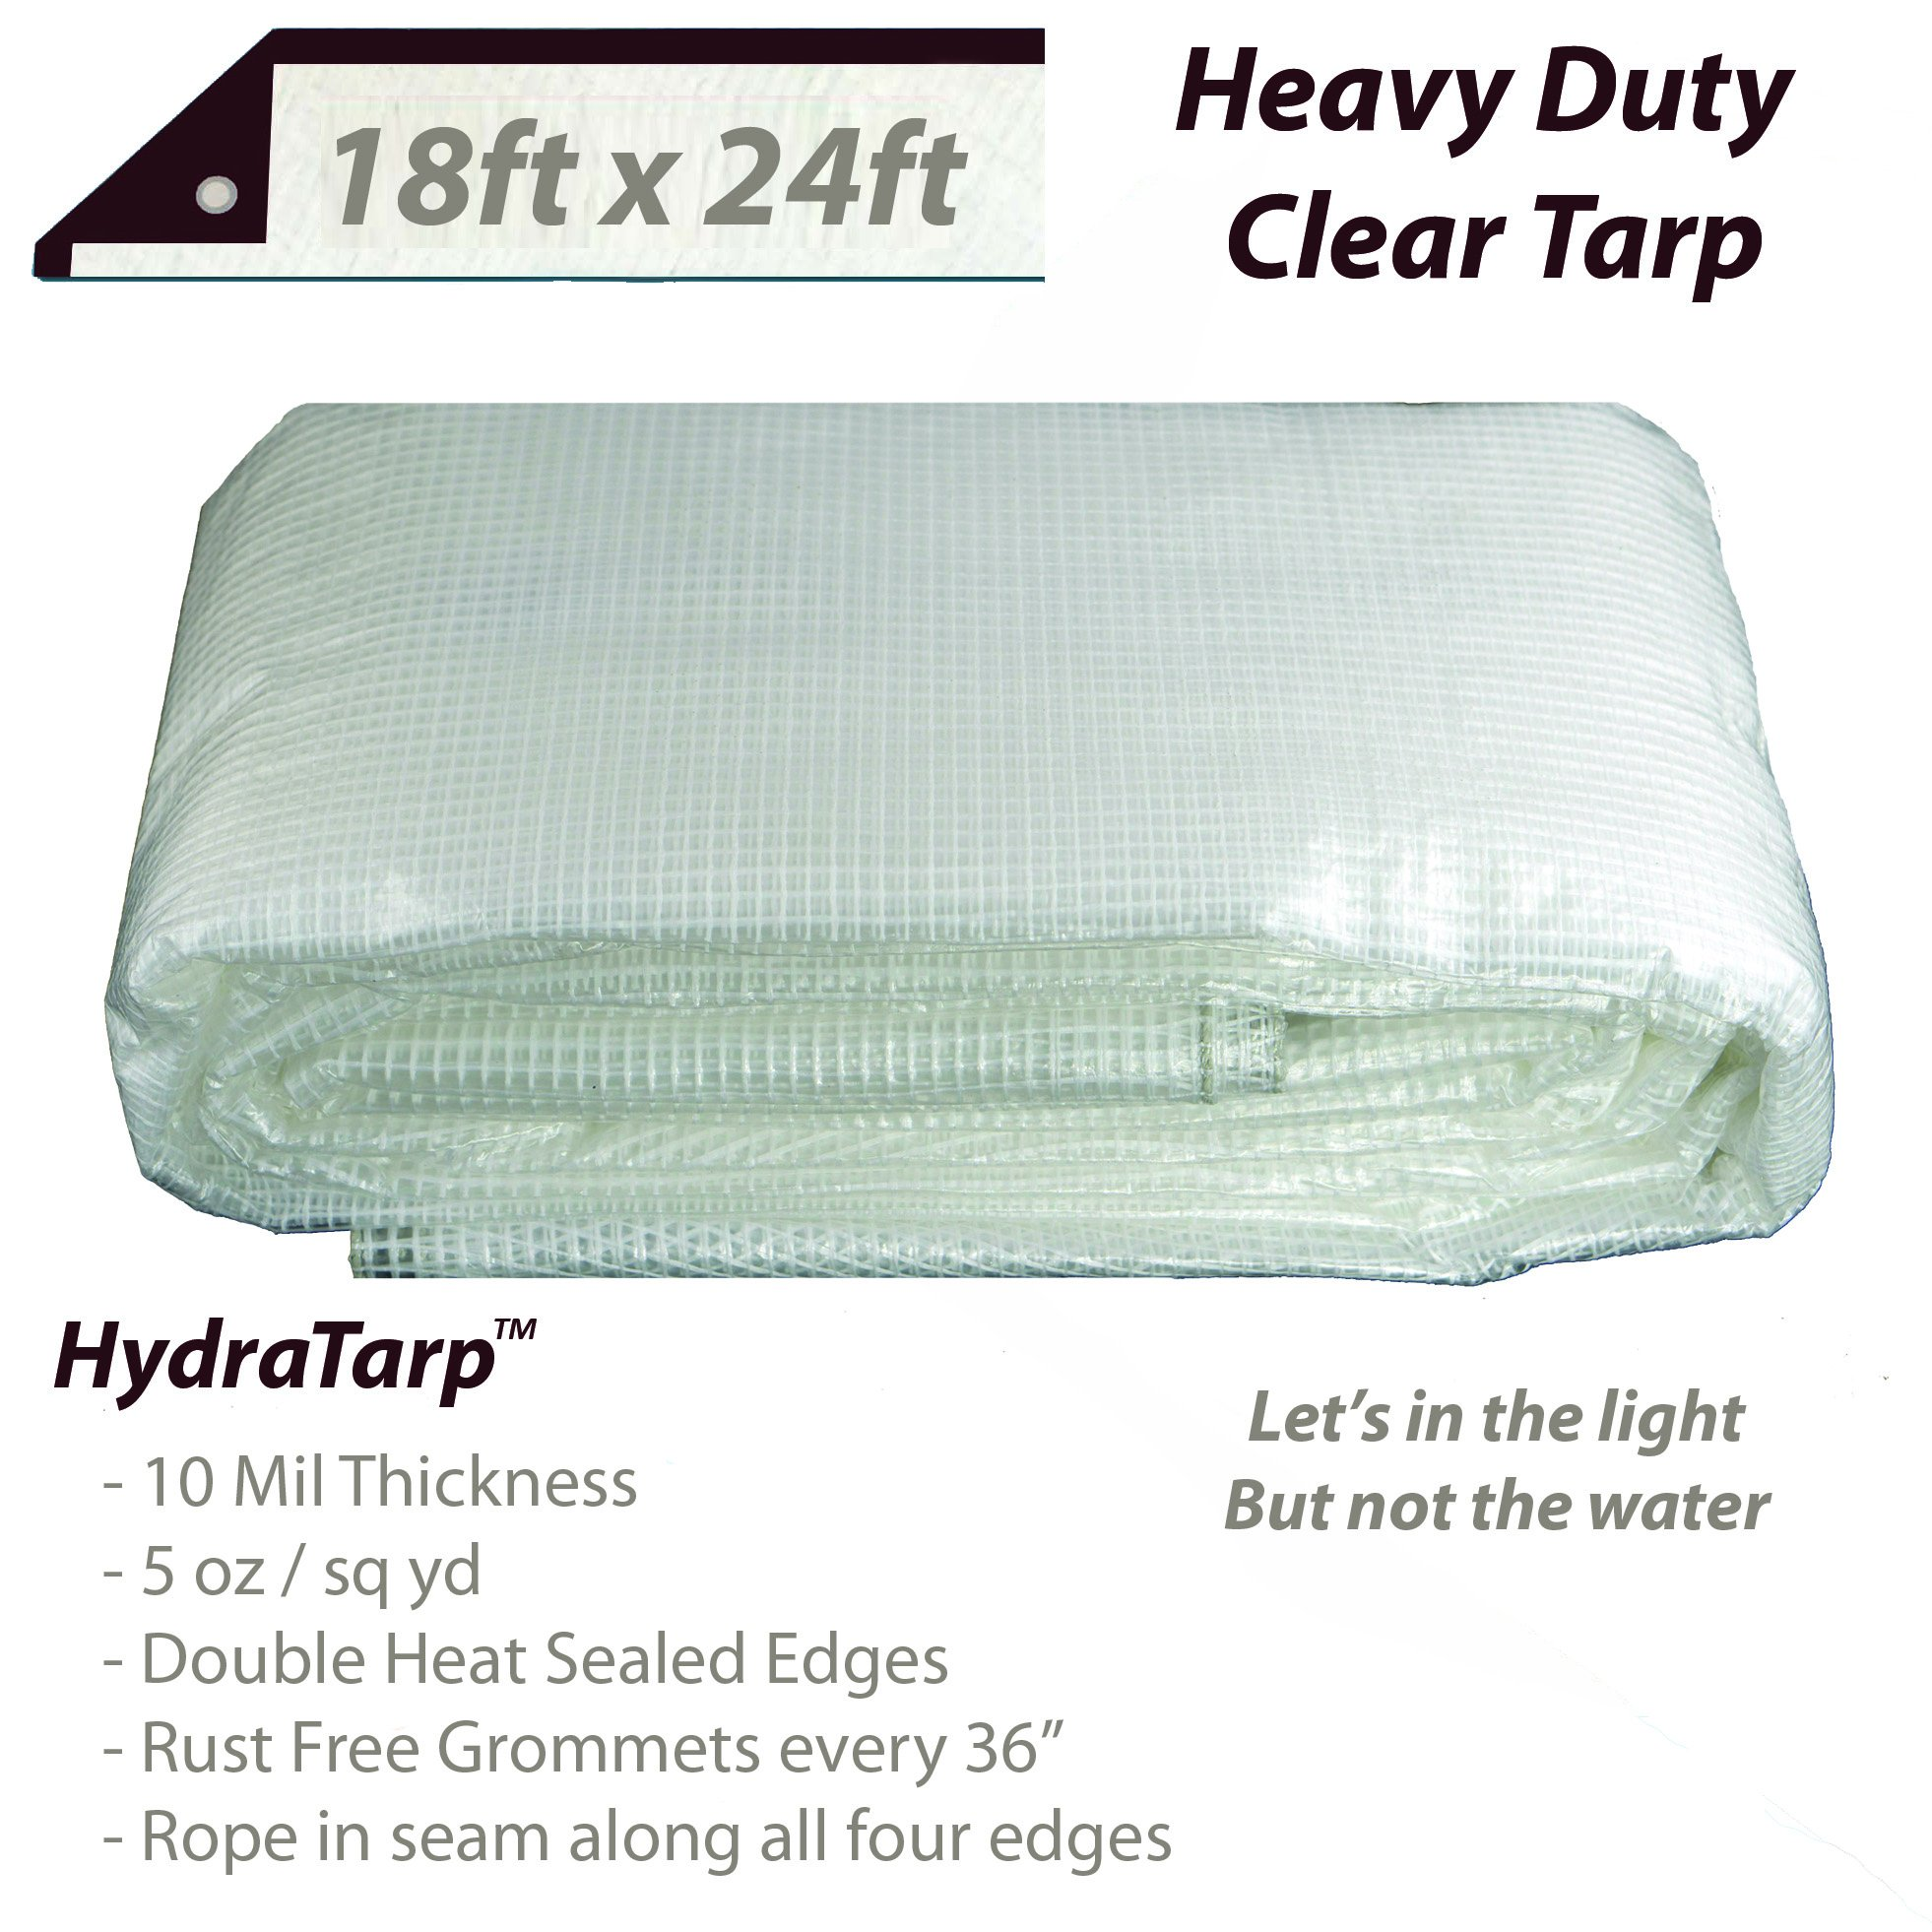 Heavy Duty Clear Greenhouse Tarp - 18ft x 24ft - Premium Quality 10 mil with 3x3 Mesh Weave for Added Strength - UV Coated Protection for Outdoor Camping RV Truck and Trailers